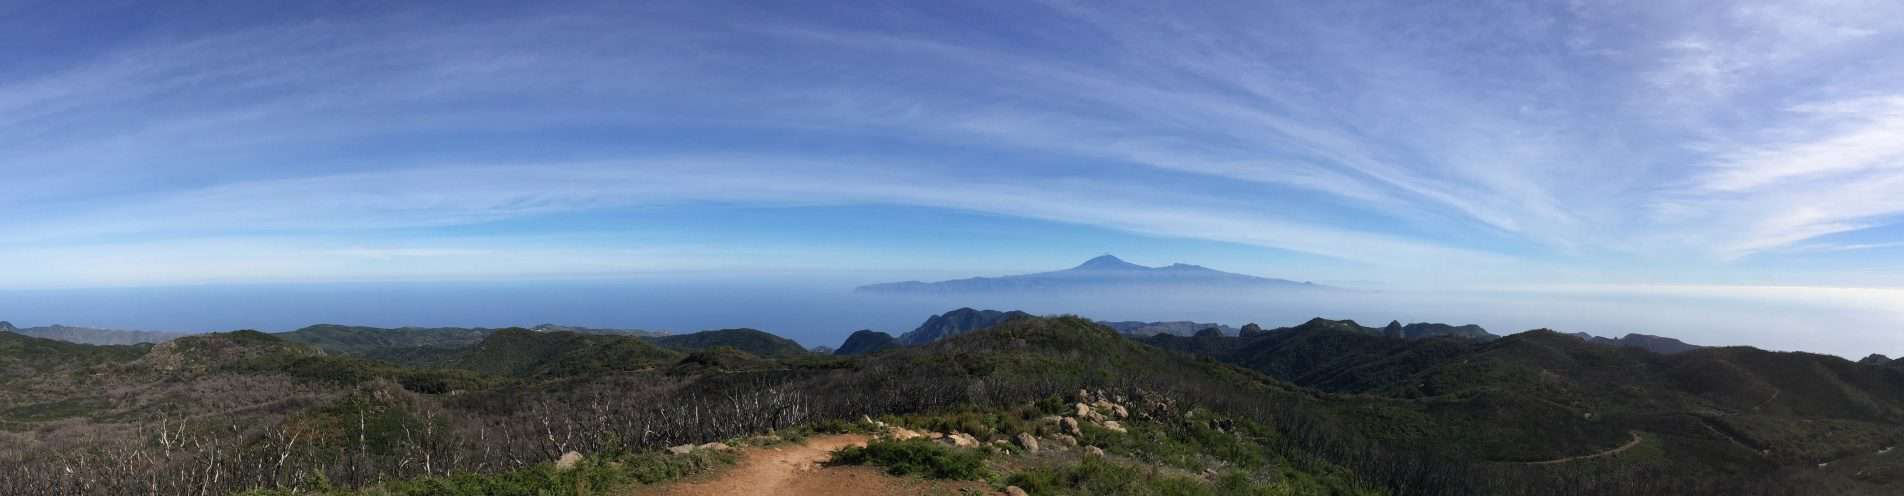 View to the neighboring island of Tenerife with the Teide